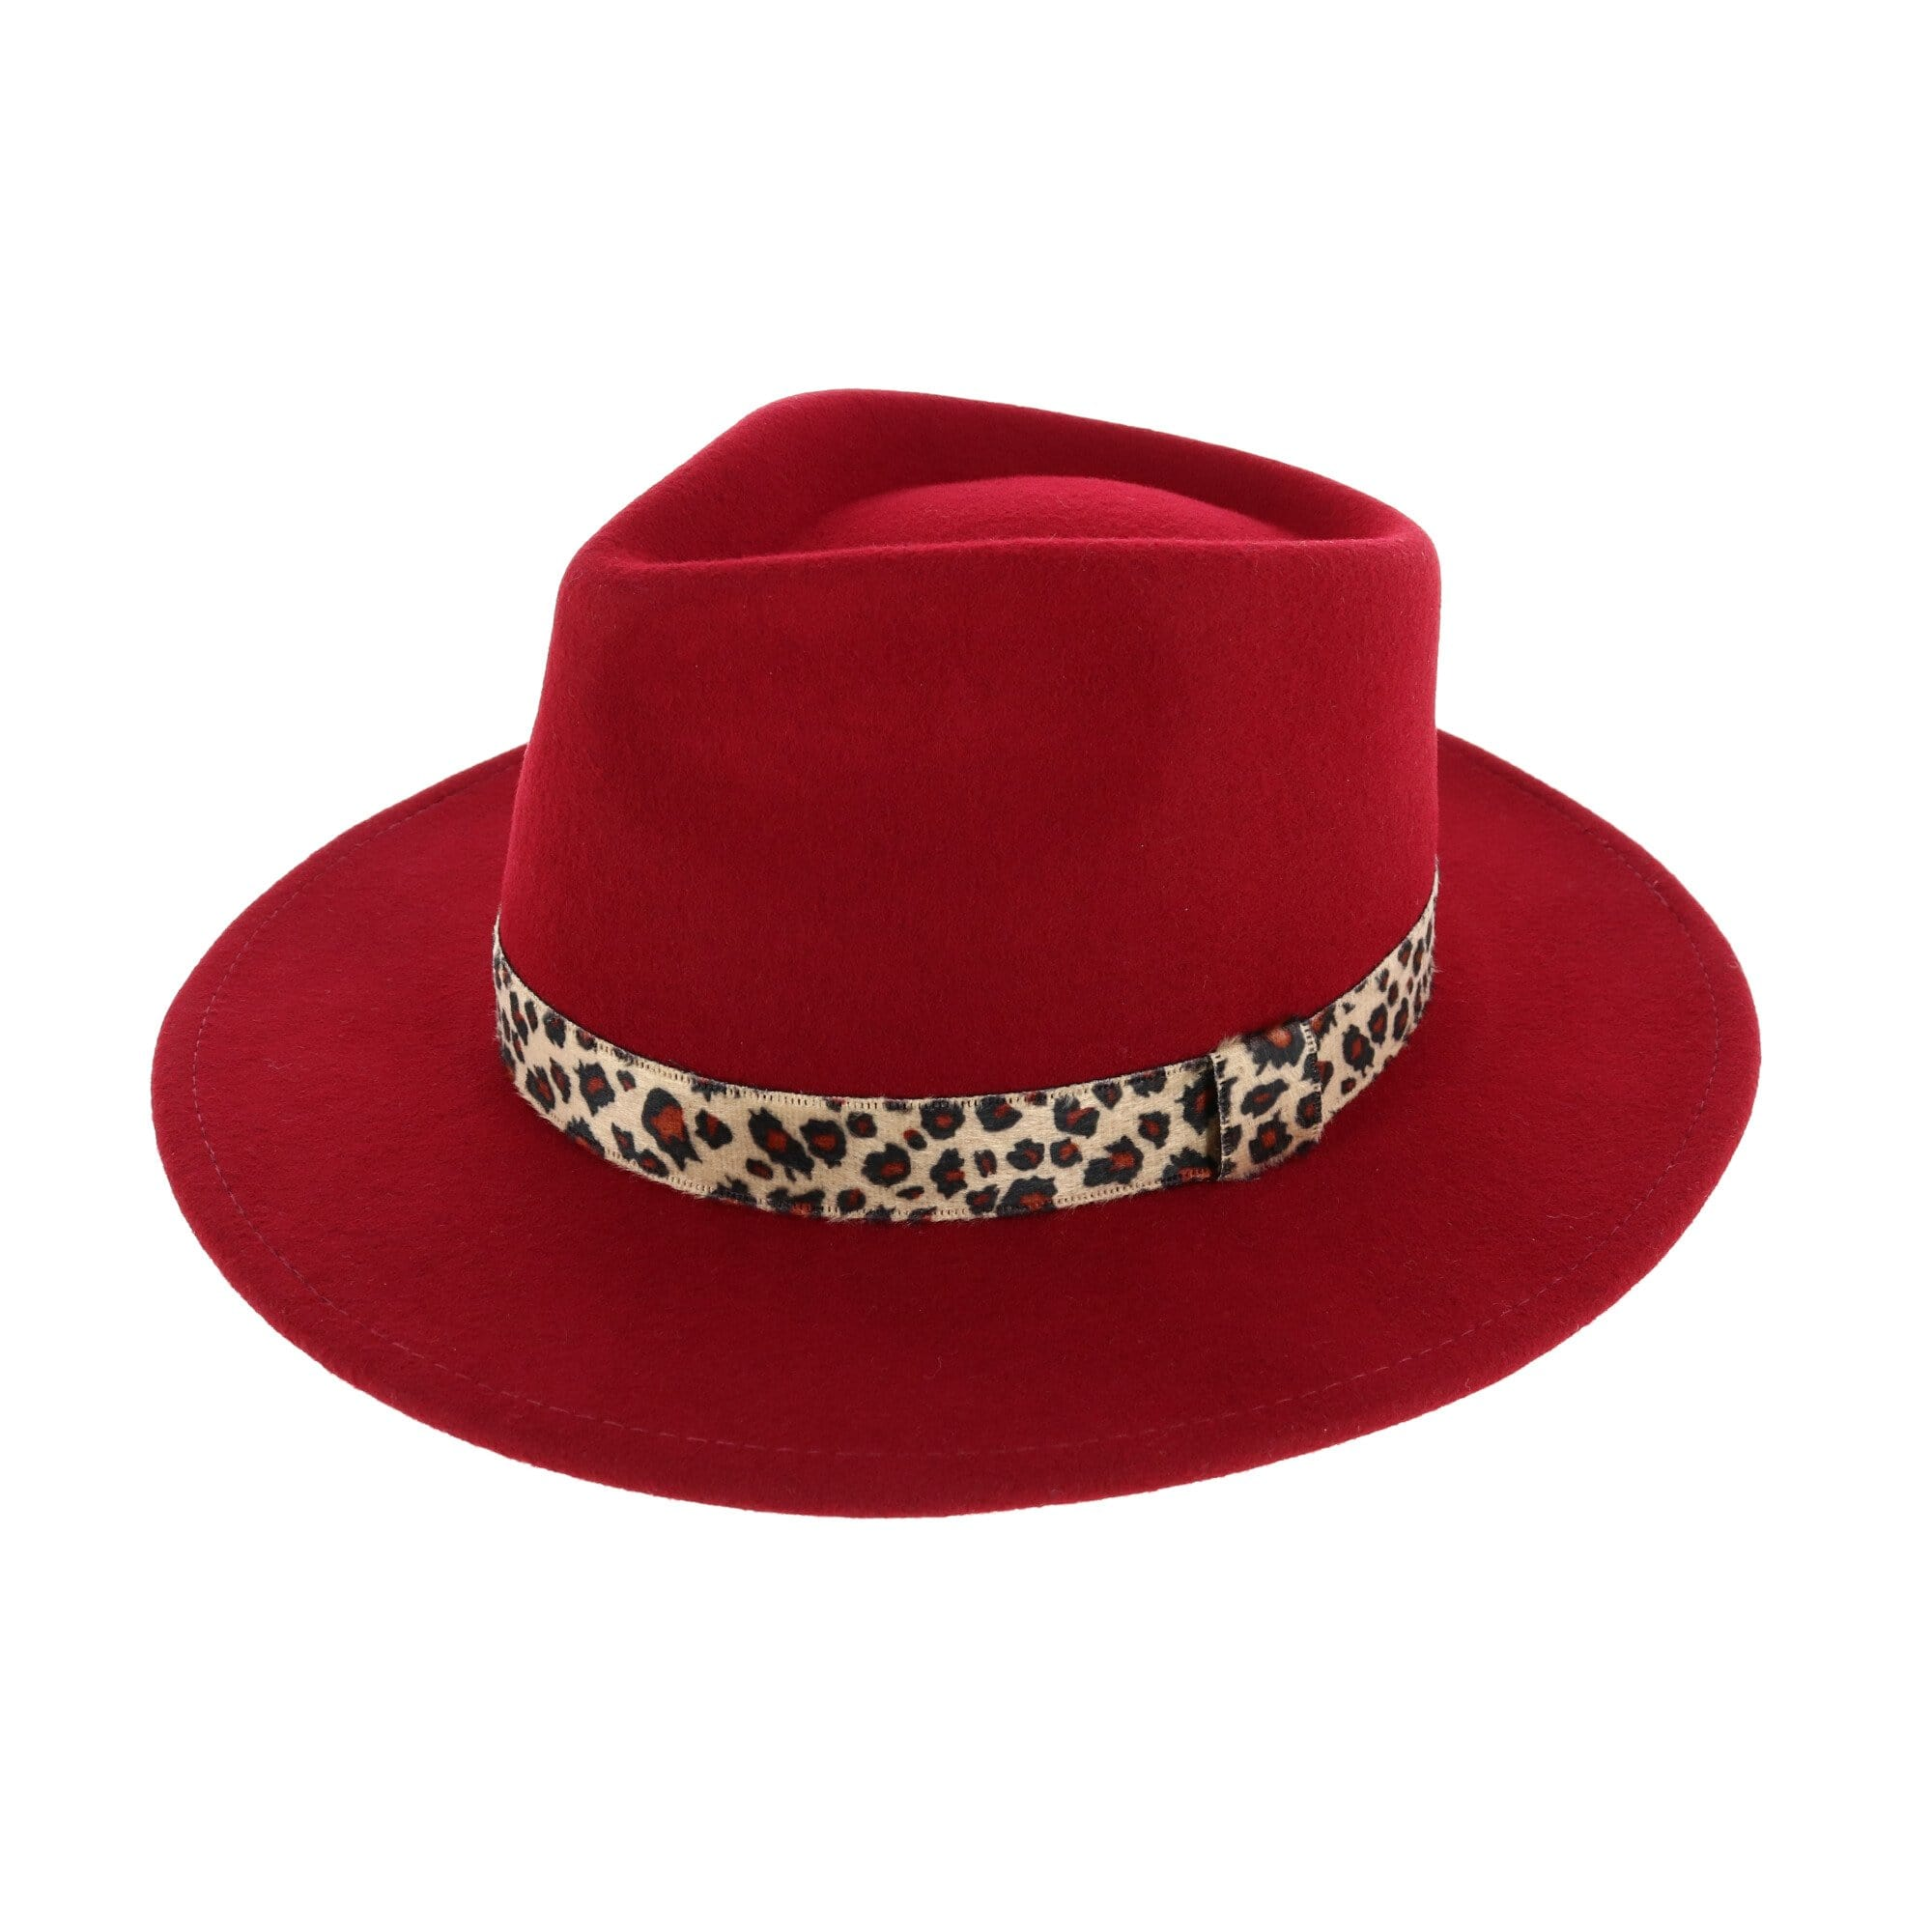 Jeanne Simmons Women's Large Brim Wool Felt Fedora Hat with Leopard Band